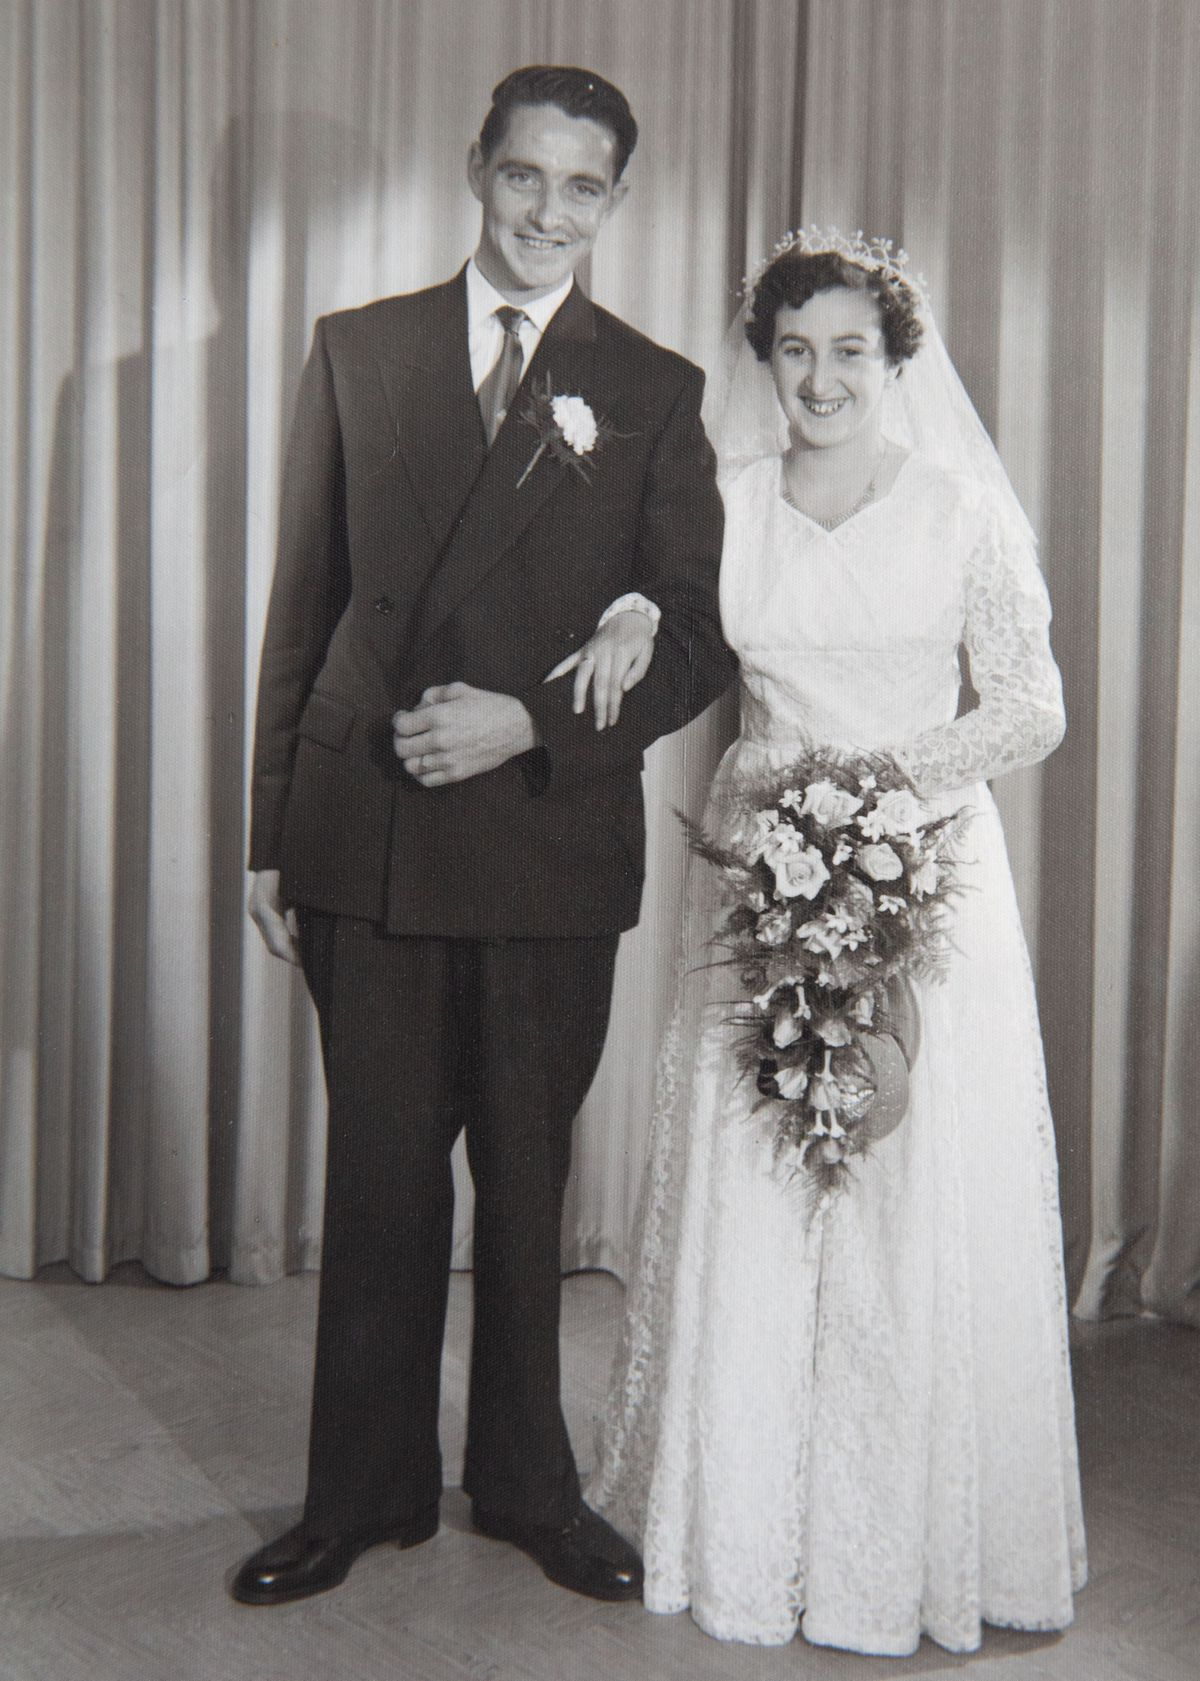 The couple on their wedding day in 1956. (29736003)